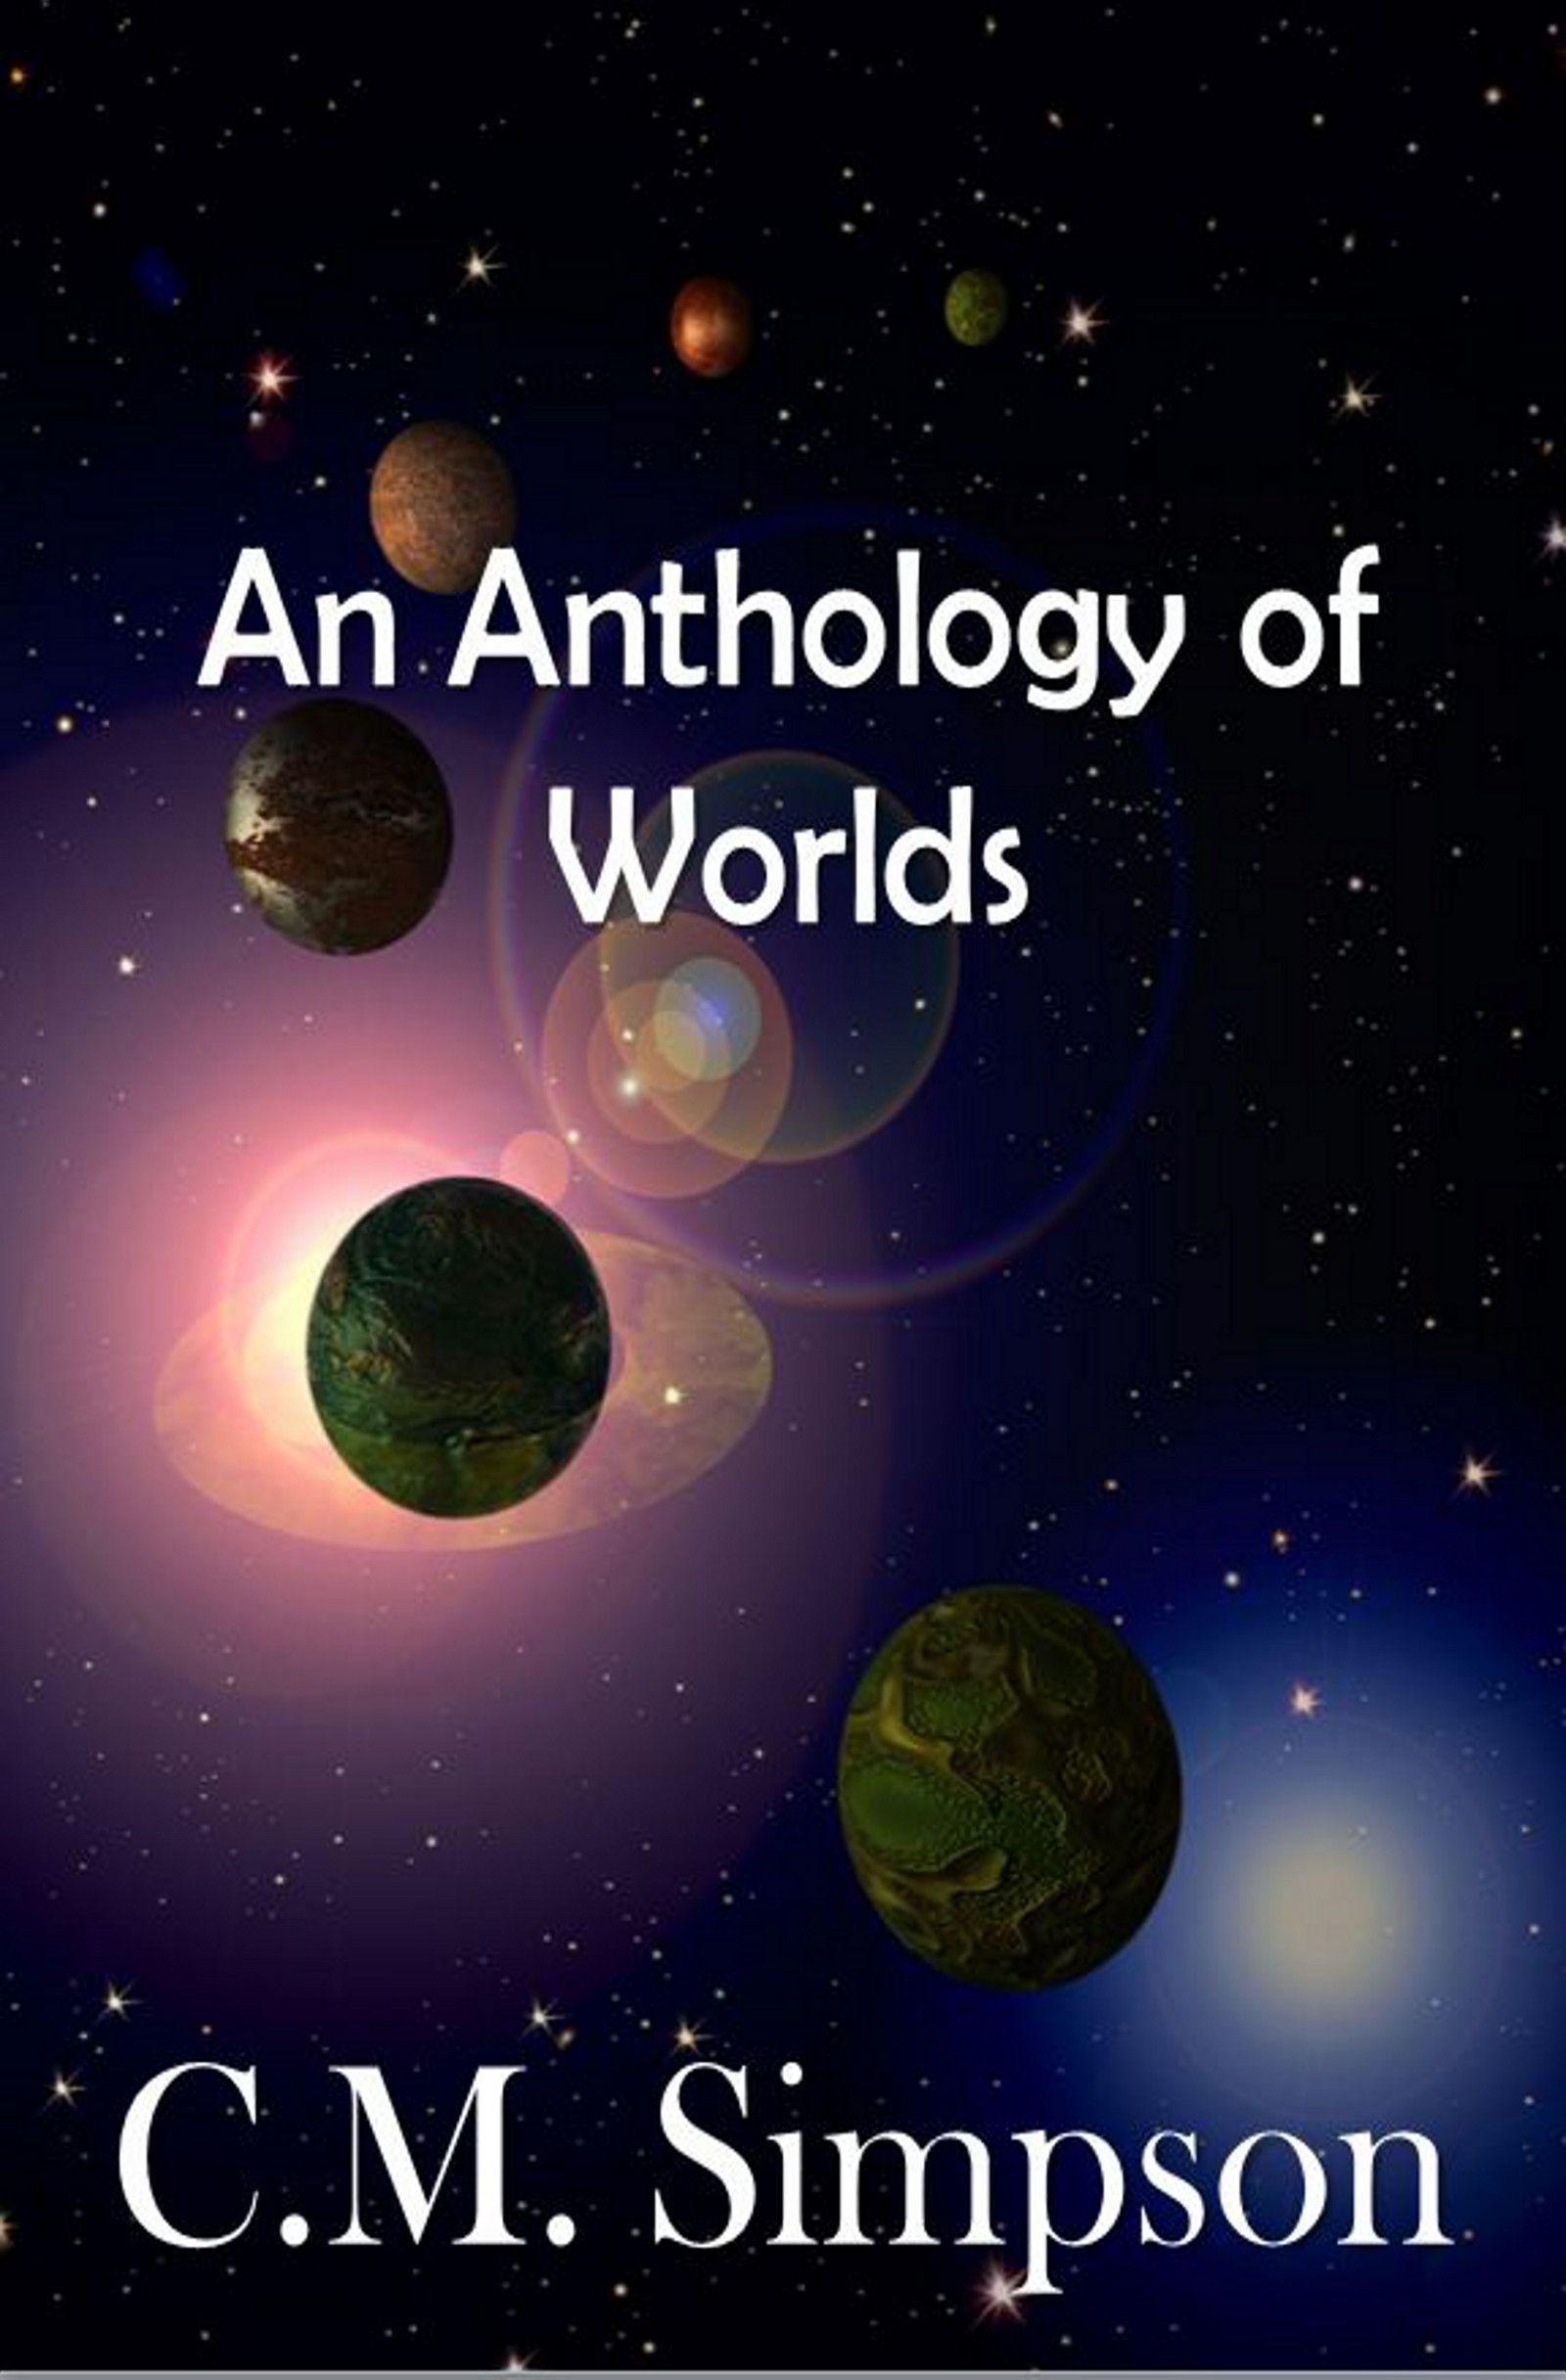 New cover for 'An Anthology of Worlds' - October 2012.